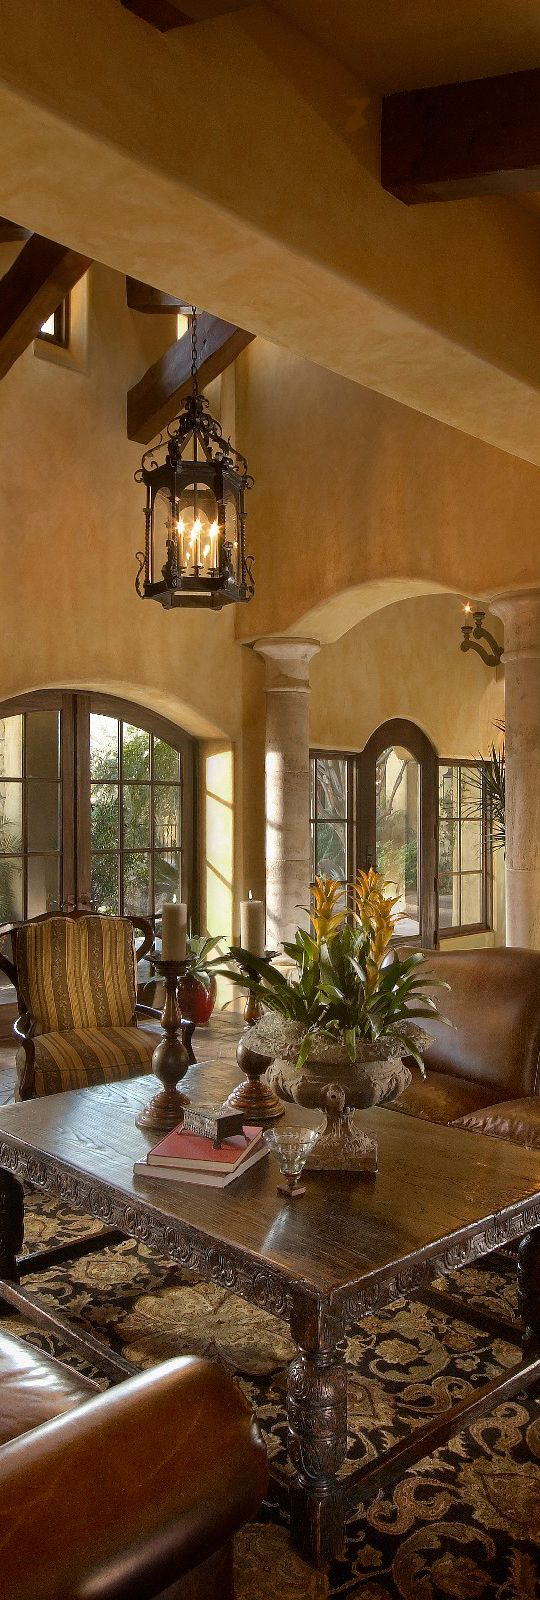 Mediterranean | Tuscany | Old World Style                                                                                                                                                      More